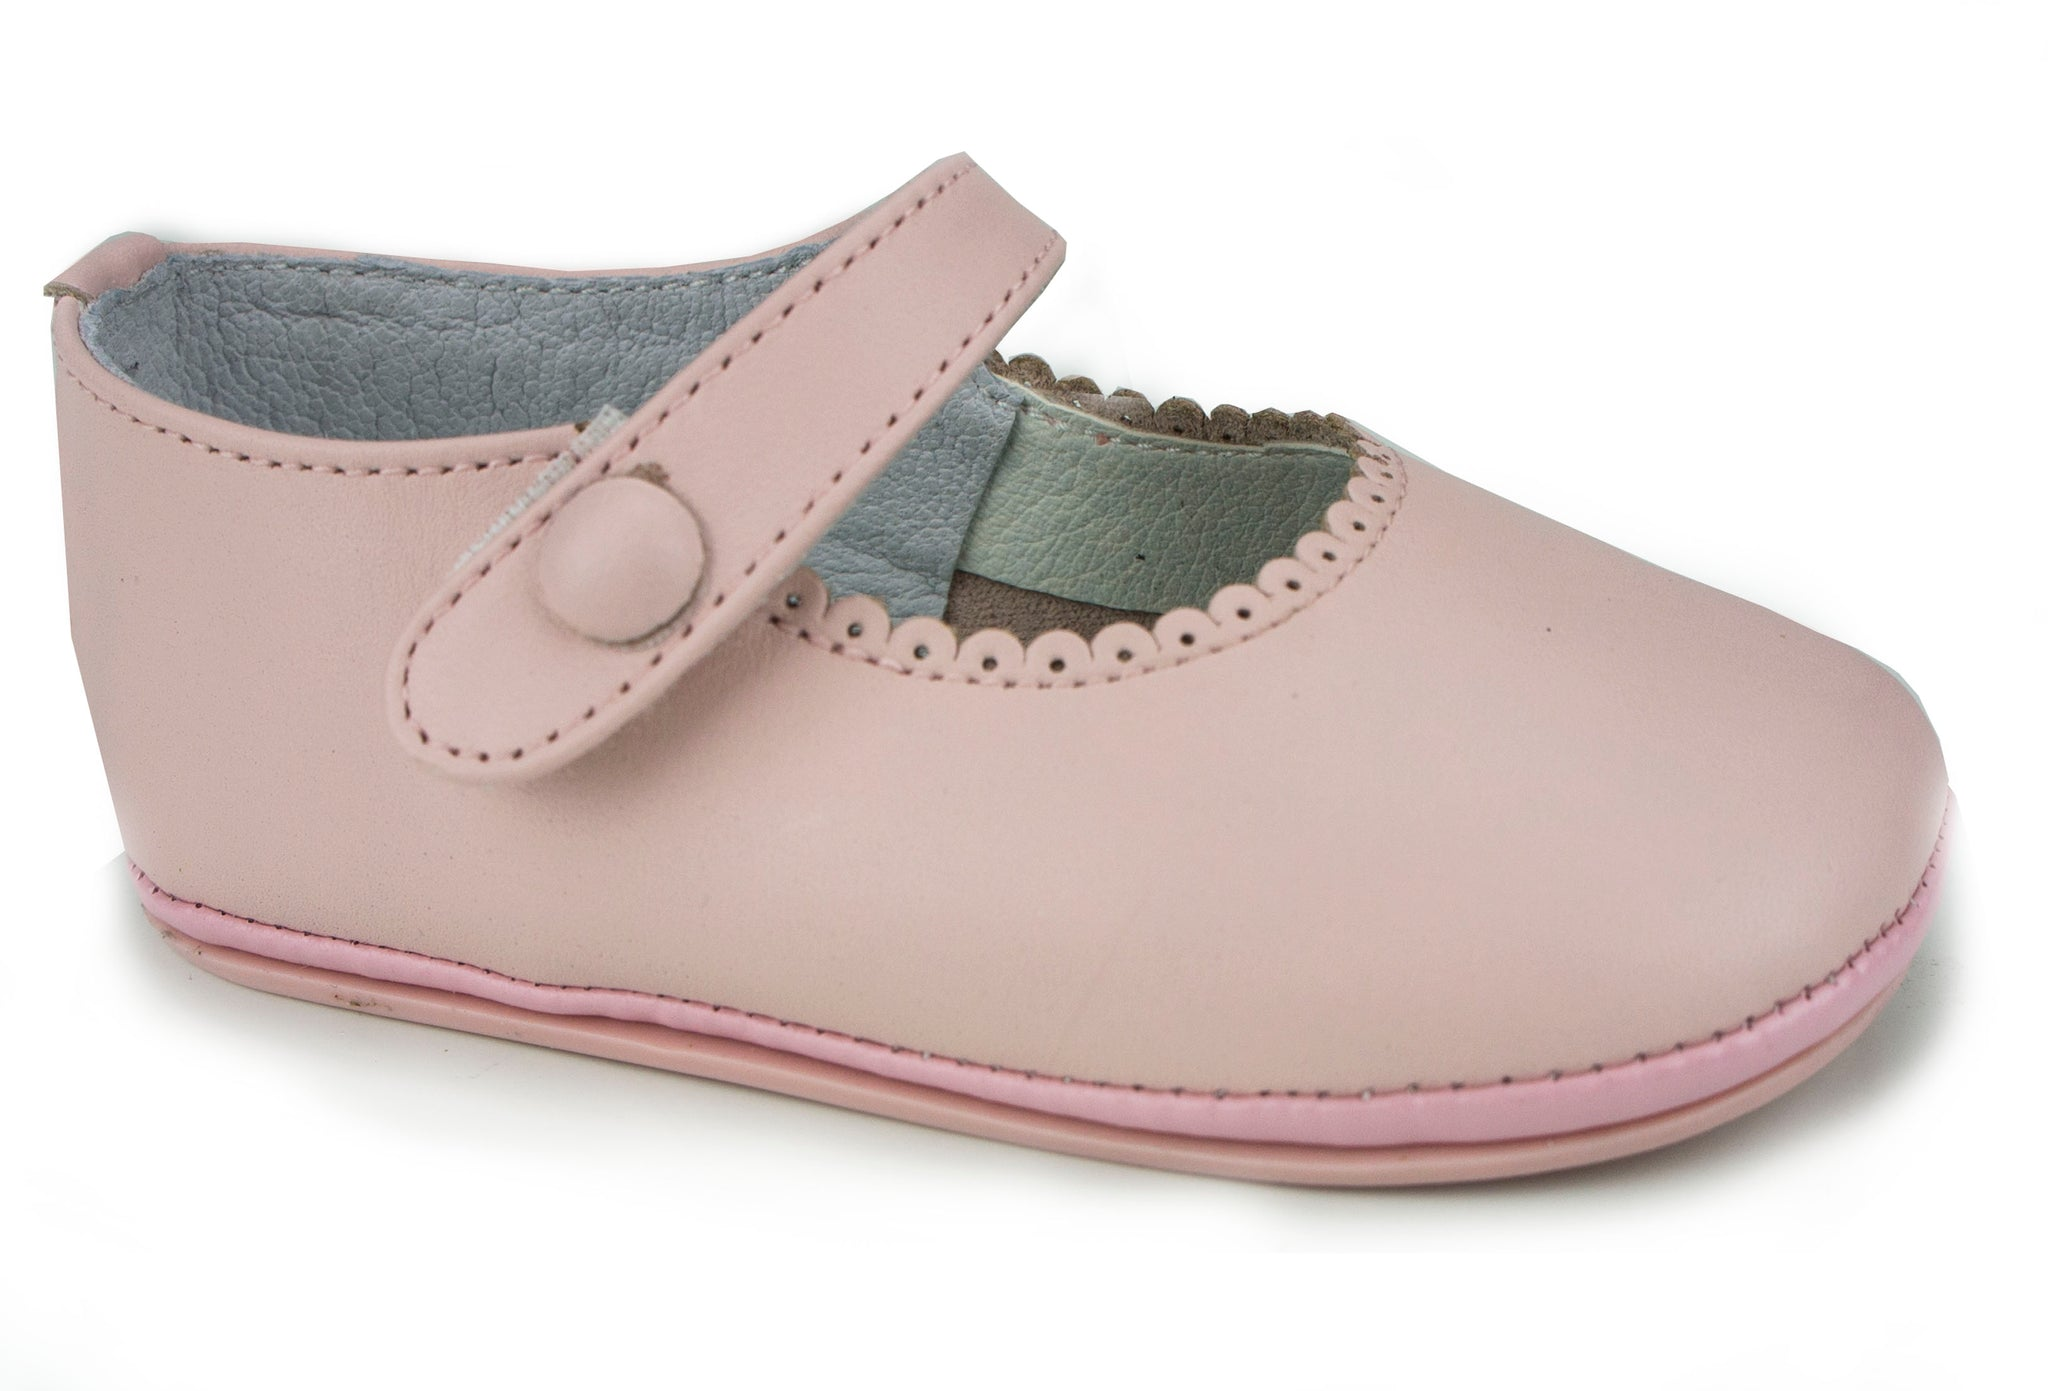 Casual Soft Leather Mary Janes Pink Shoes for Girls